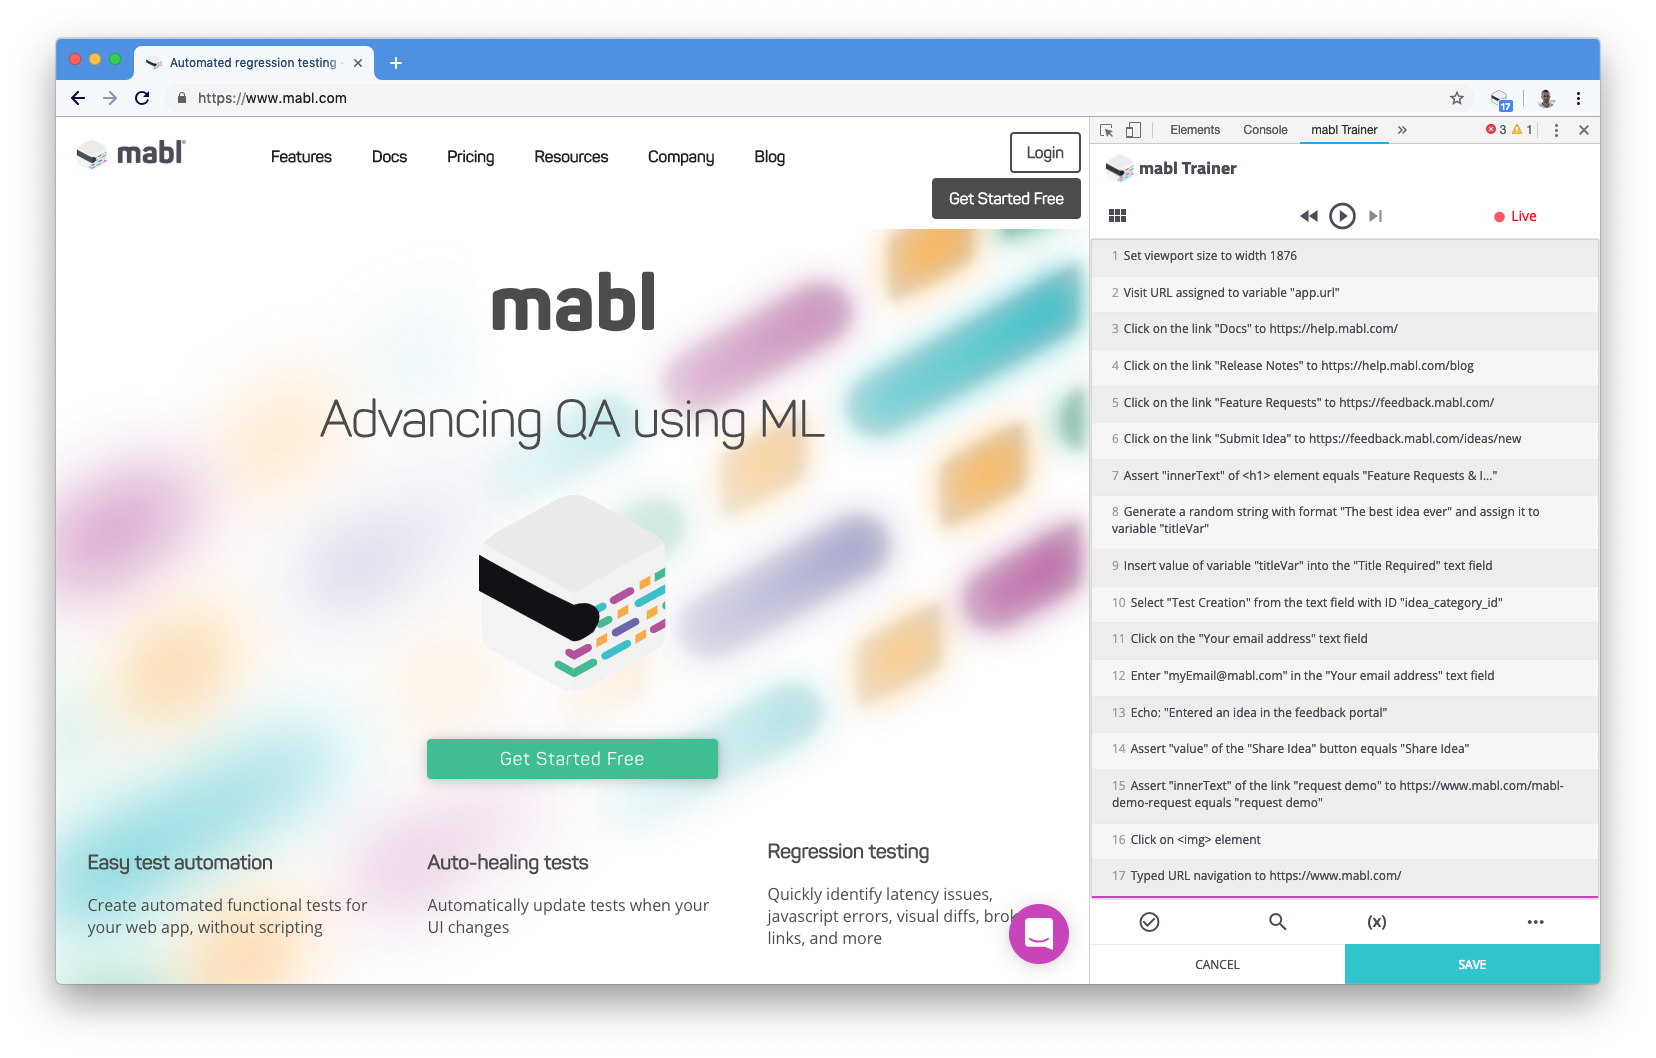 The mabl trainer expanded in DevTools.